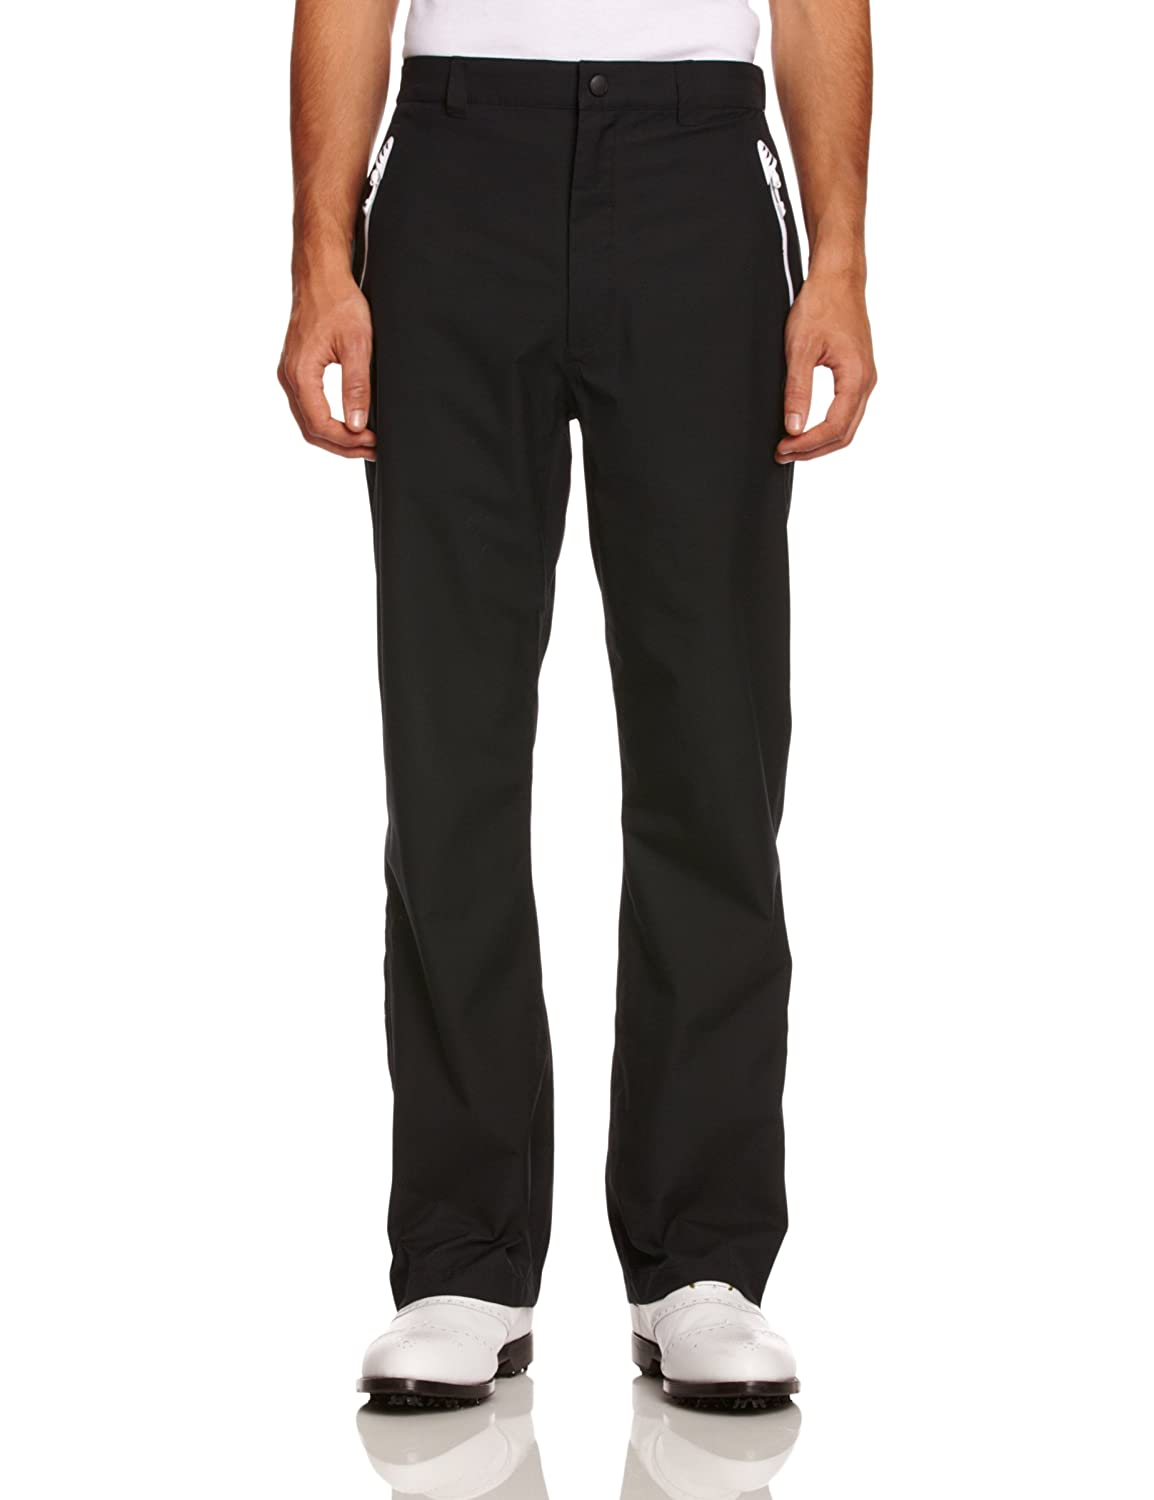 Amazon.com : adidas 2015 Climaproof Gore-TEX 2-Layer Pant ...